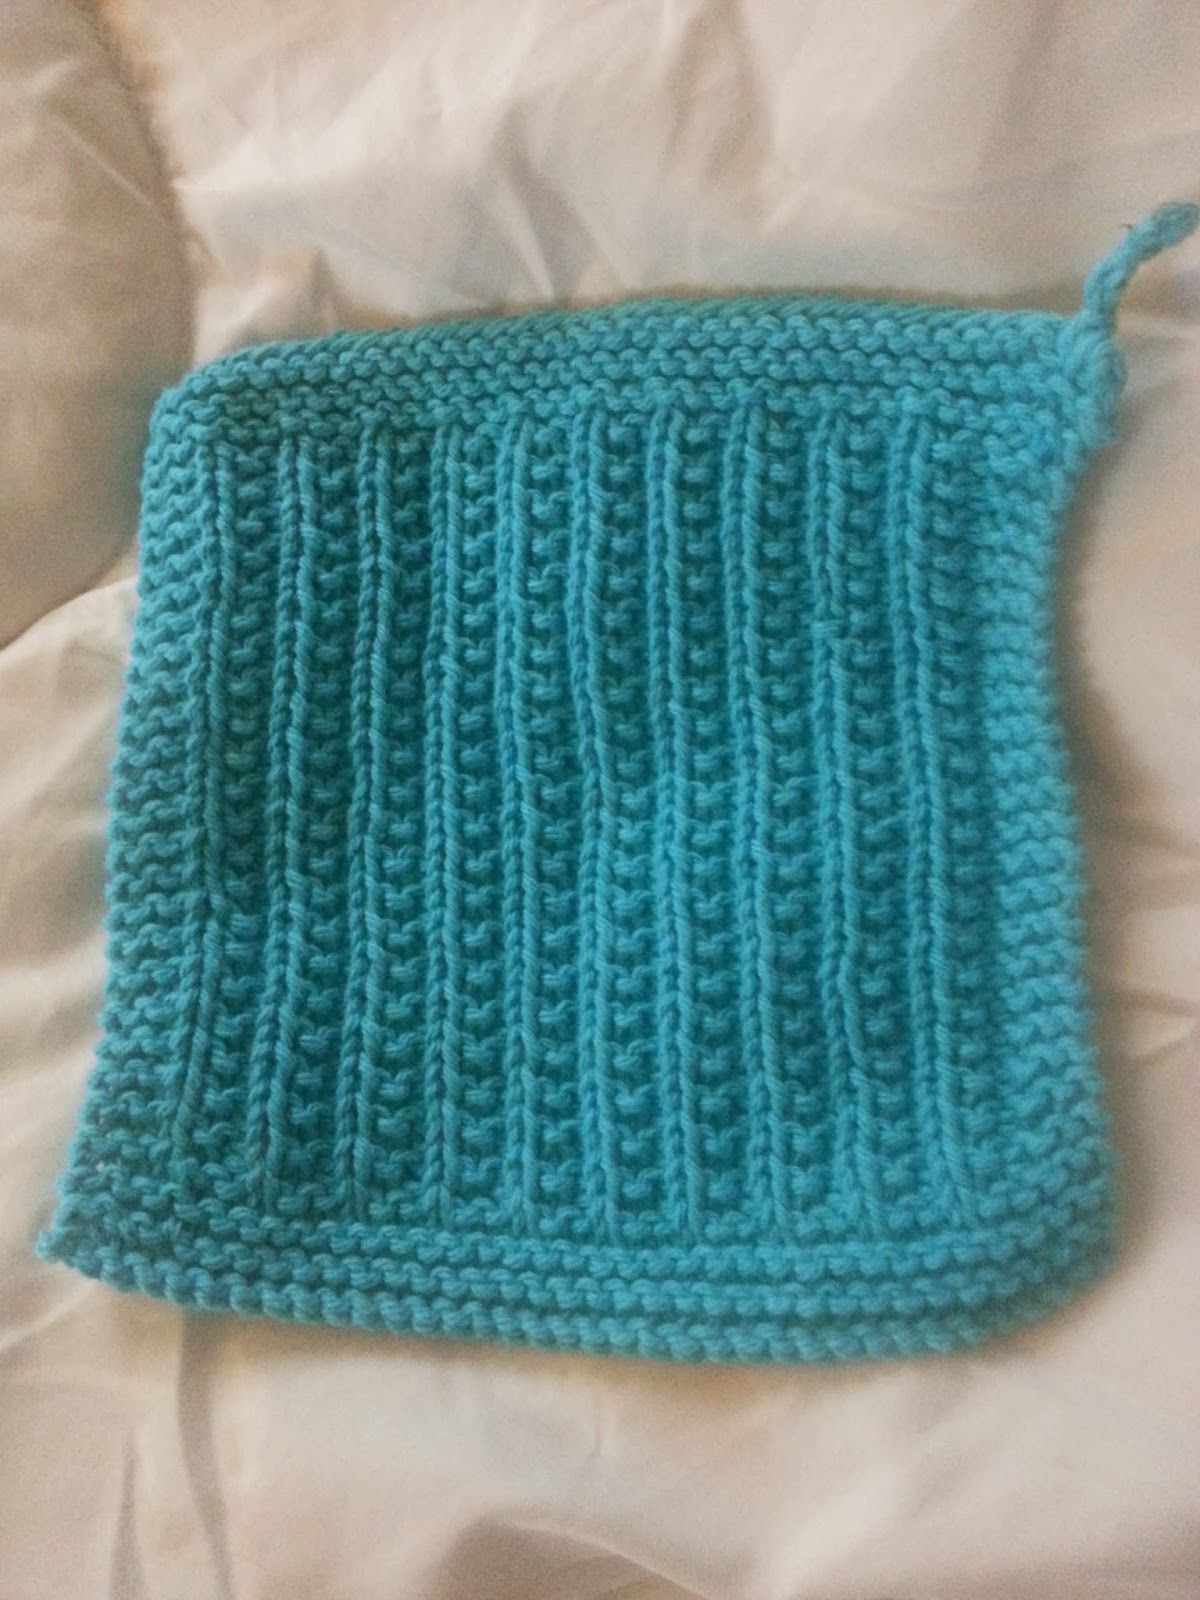 Sewing to Bliss: Cluster Rib Dishcloth Knitting Pattern | crochet ...